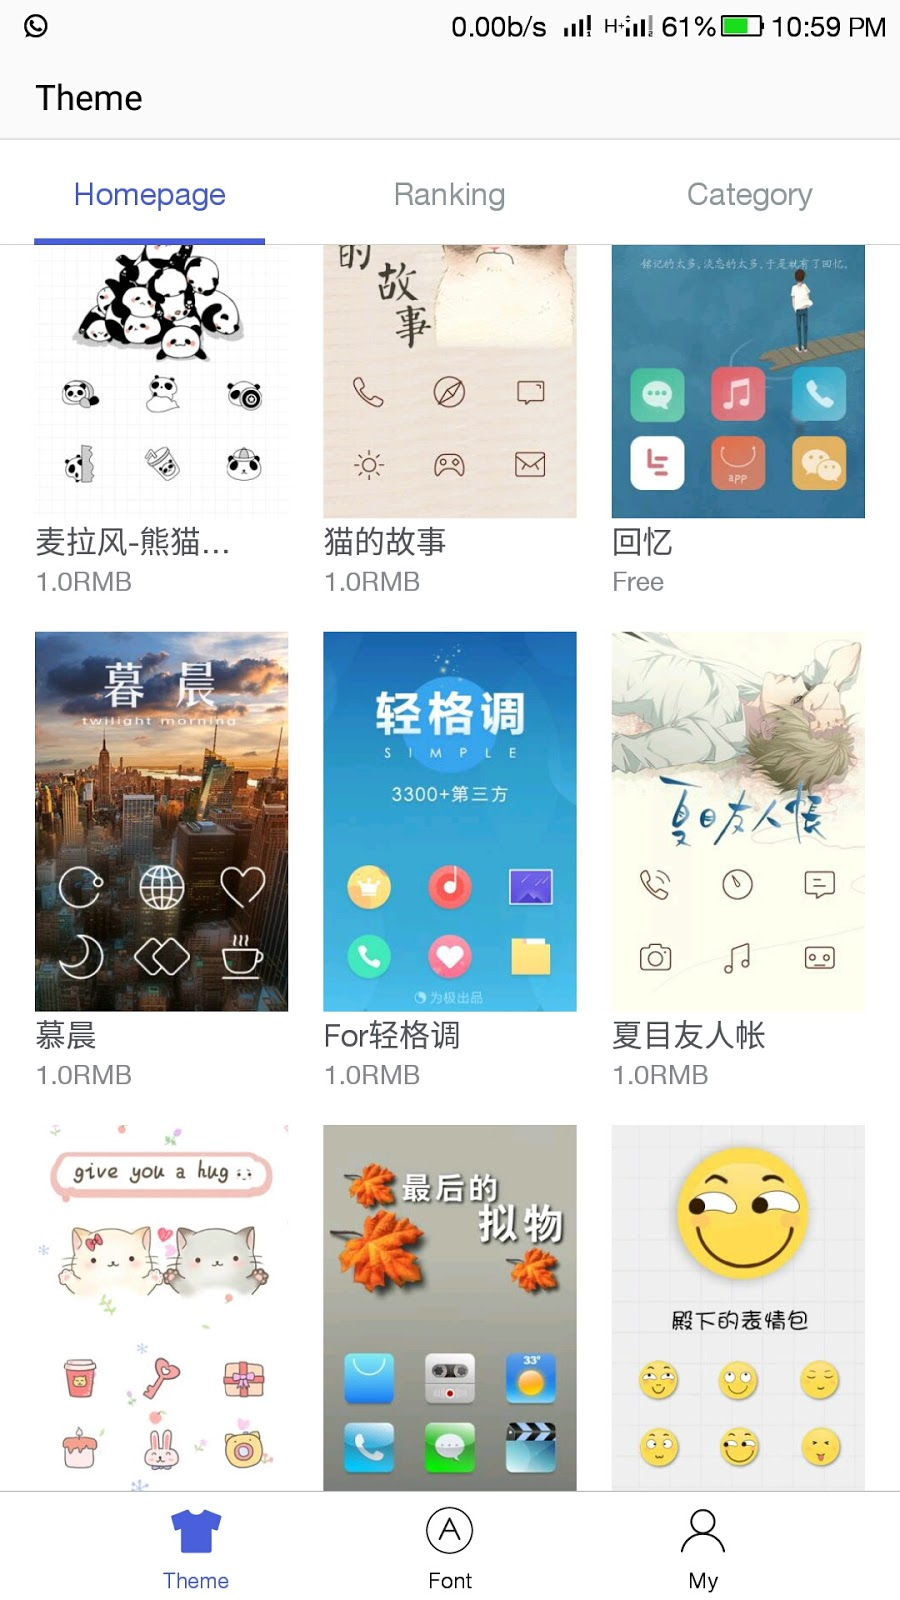 LeEco EUI Theme Store apk download full